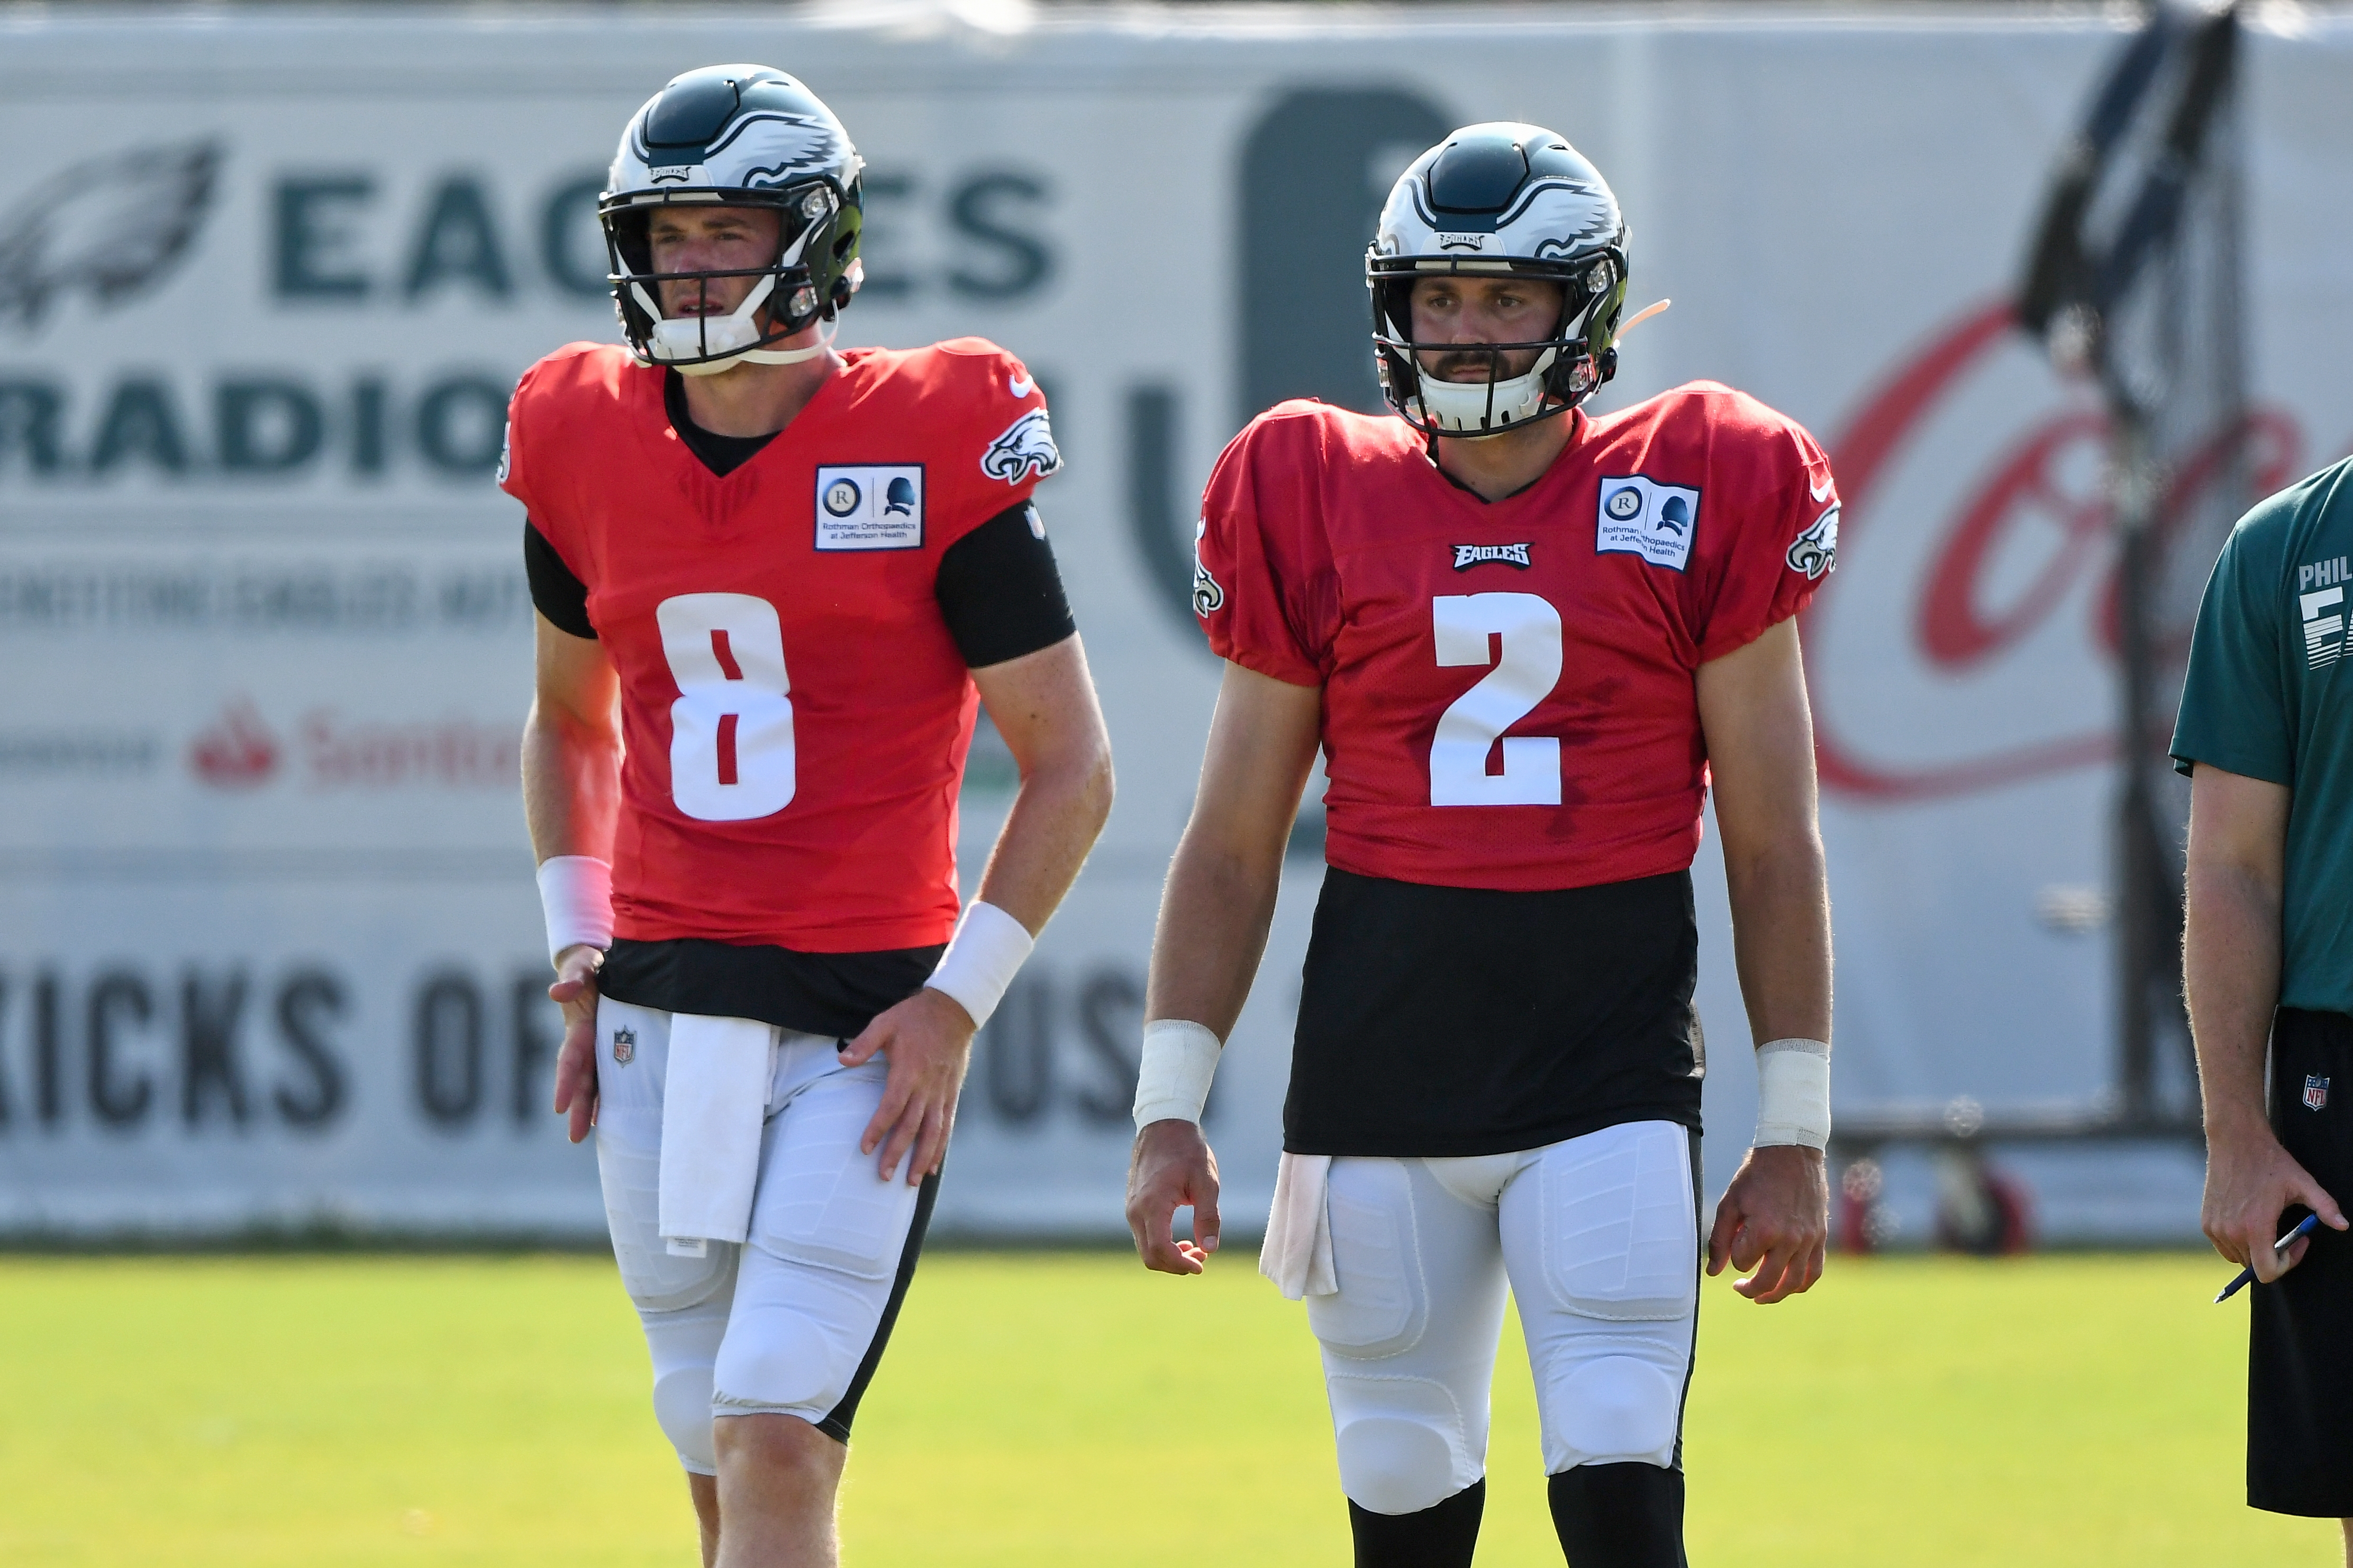 NFL: AUG 01 Eagles Training Camp